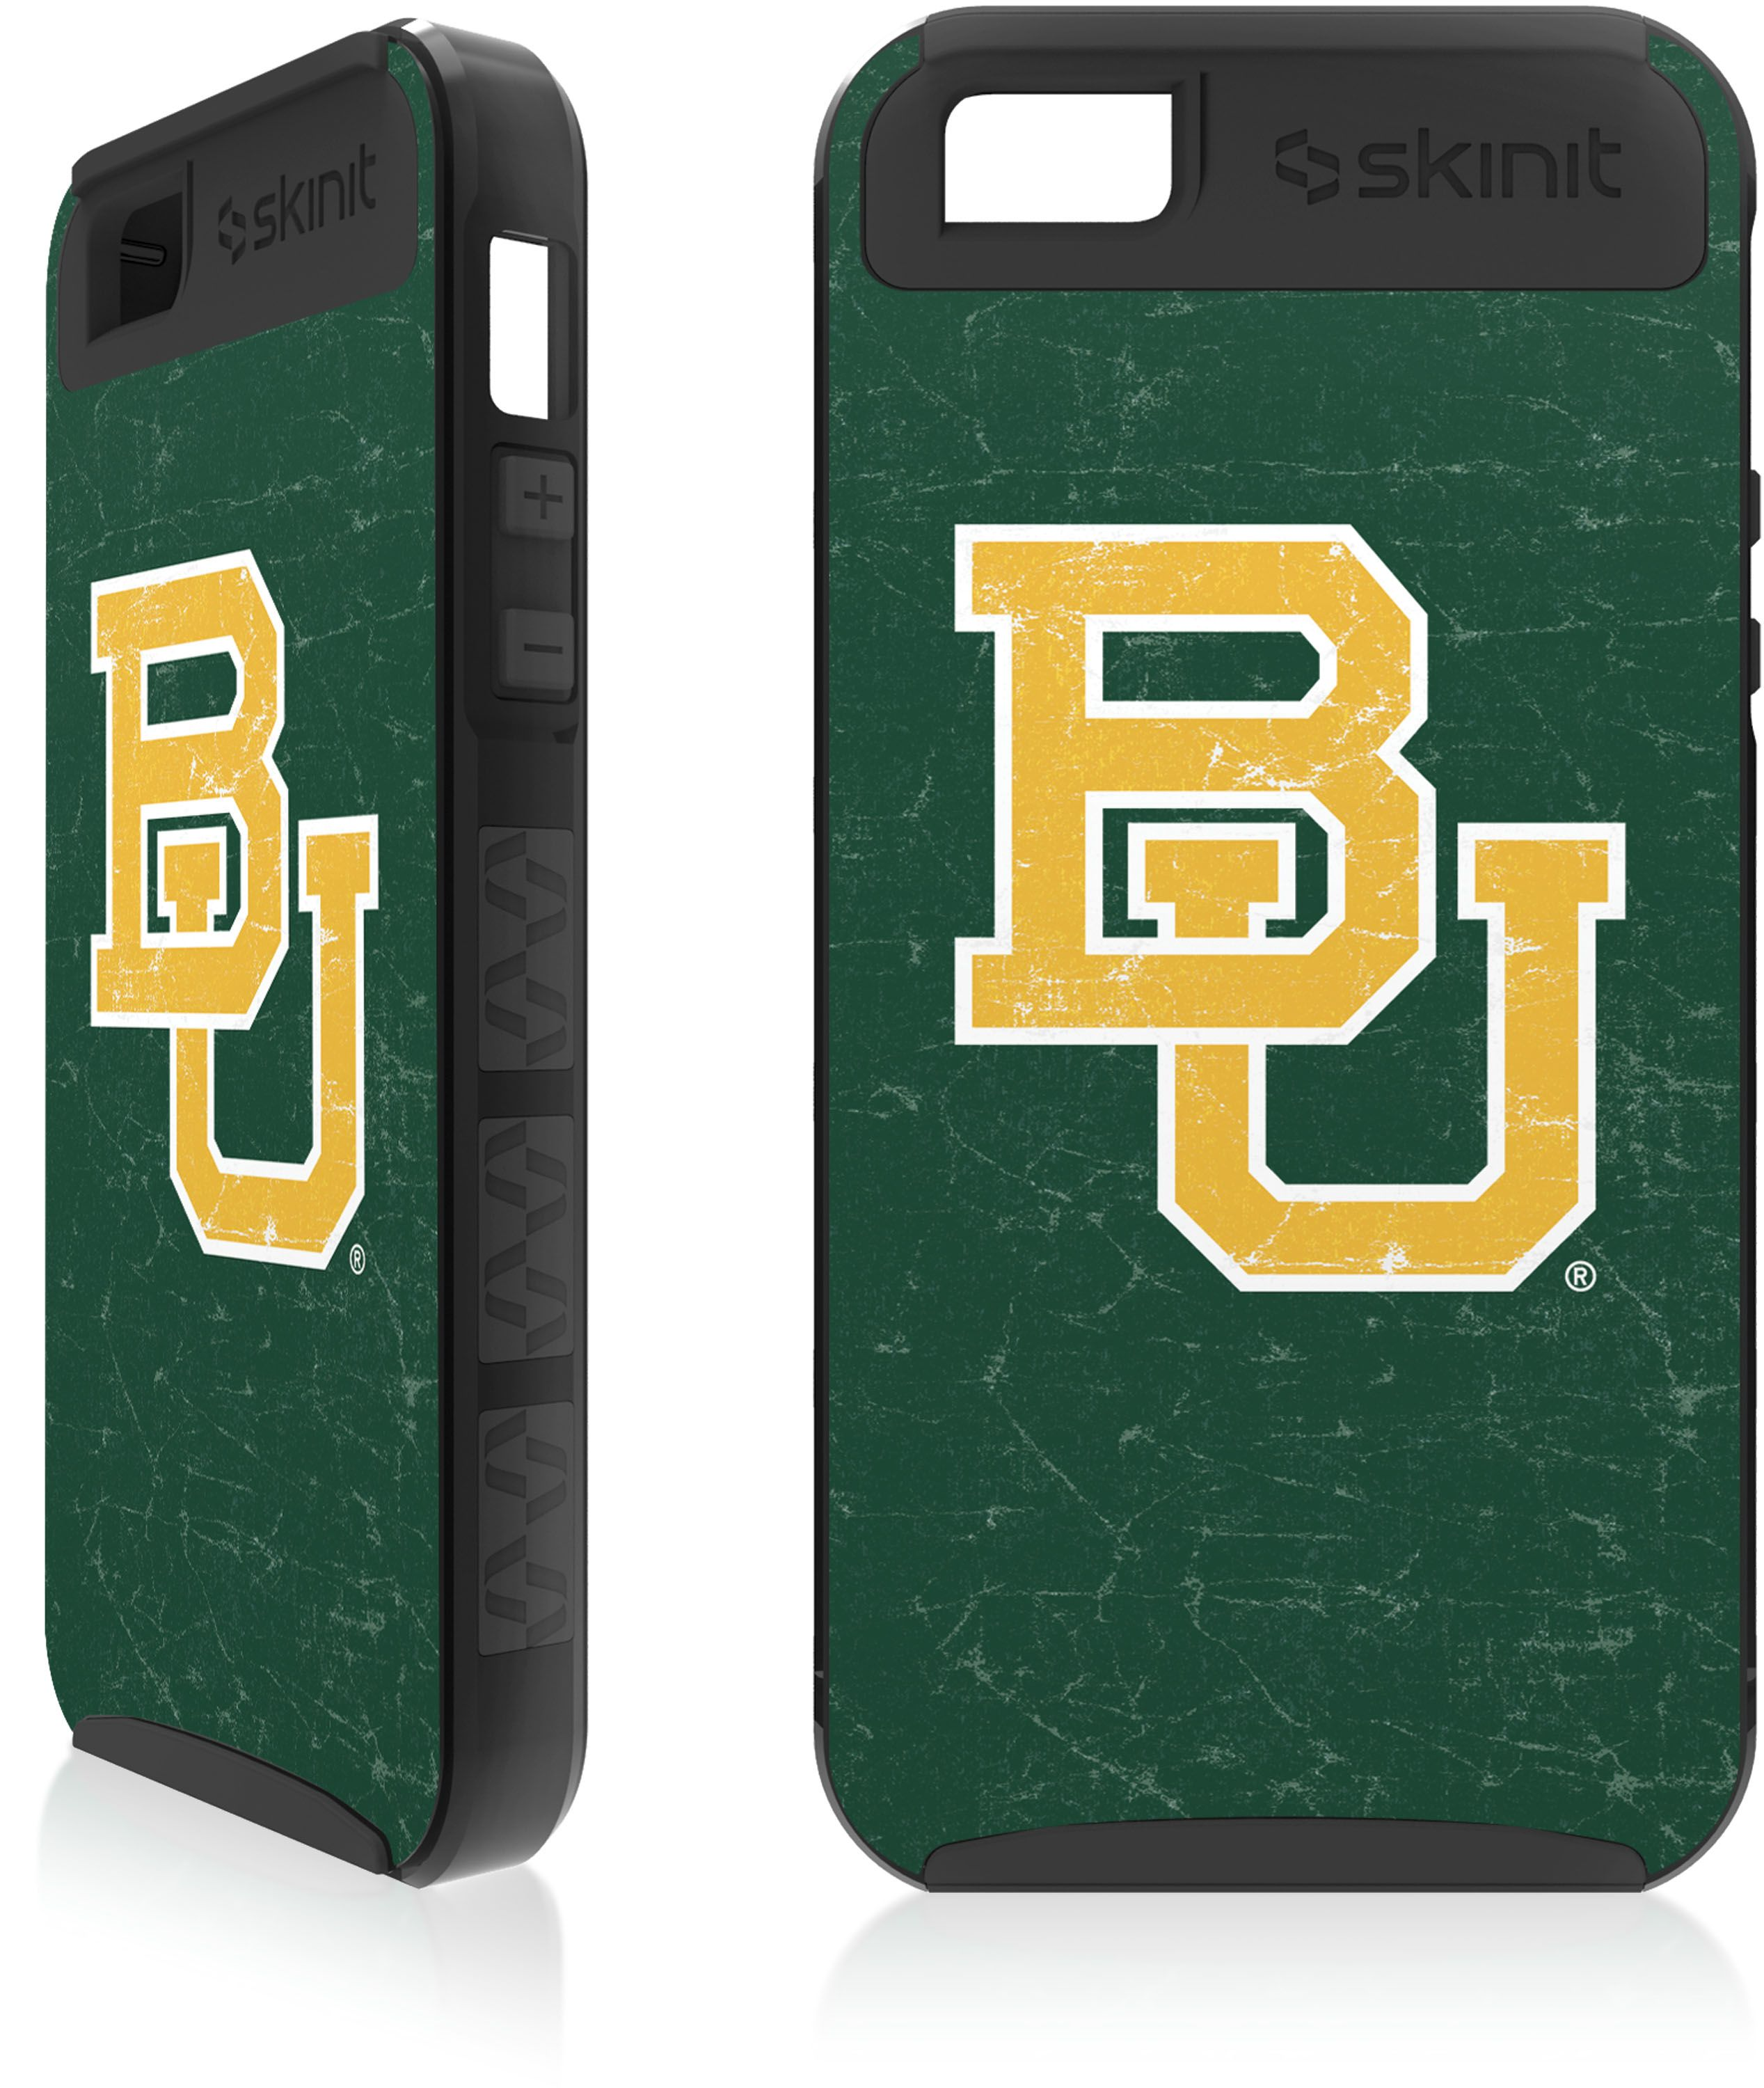 iPhone 5 case Iphone 5 case, Baylor football, Iphone 5